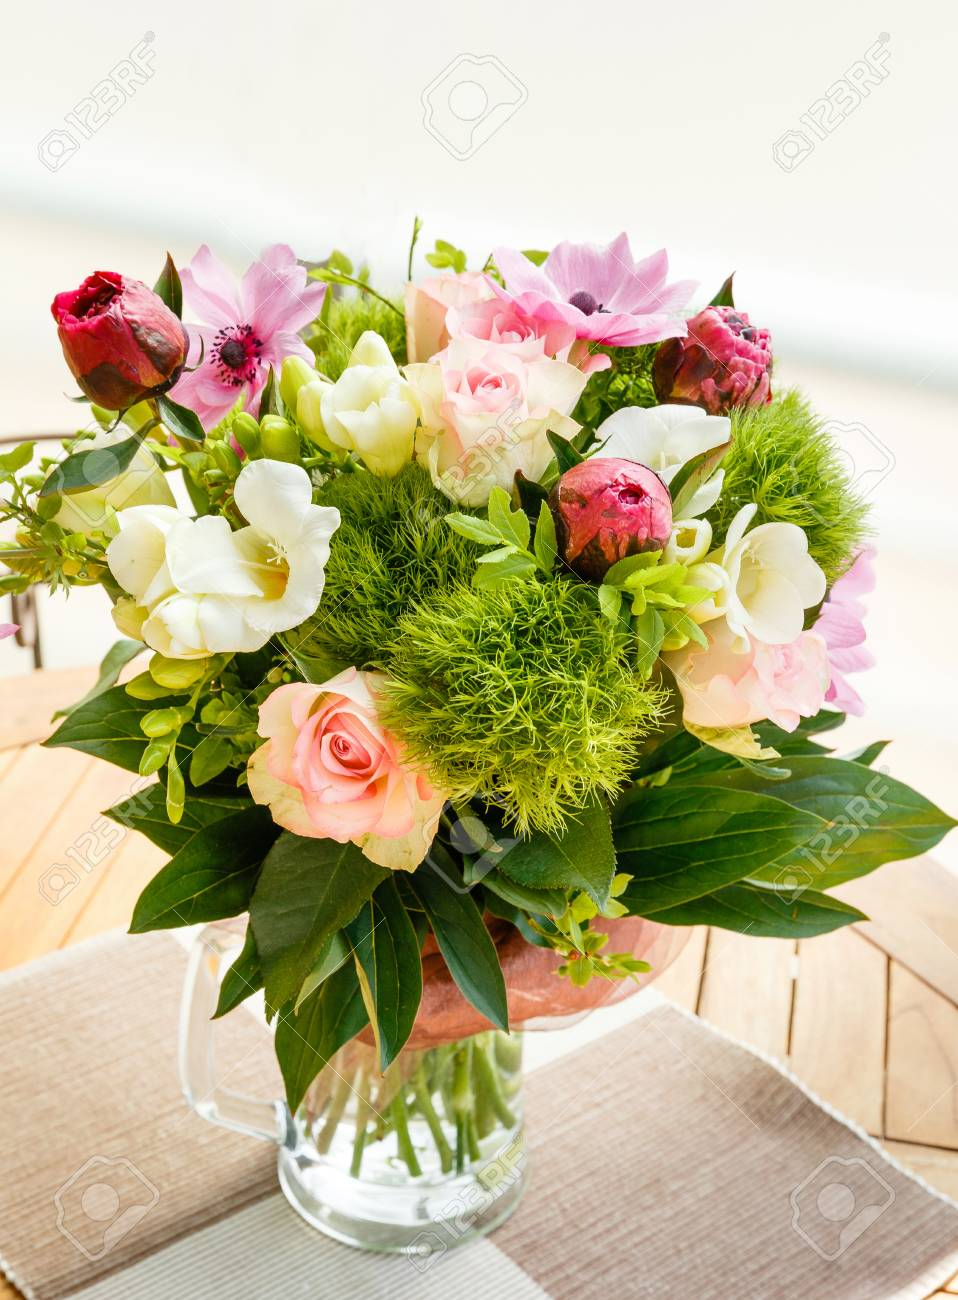 62e7a827a4 Large beautiful pink bouquet of peonies, roses, anemones, white freesia in a  vase